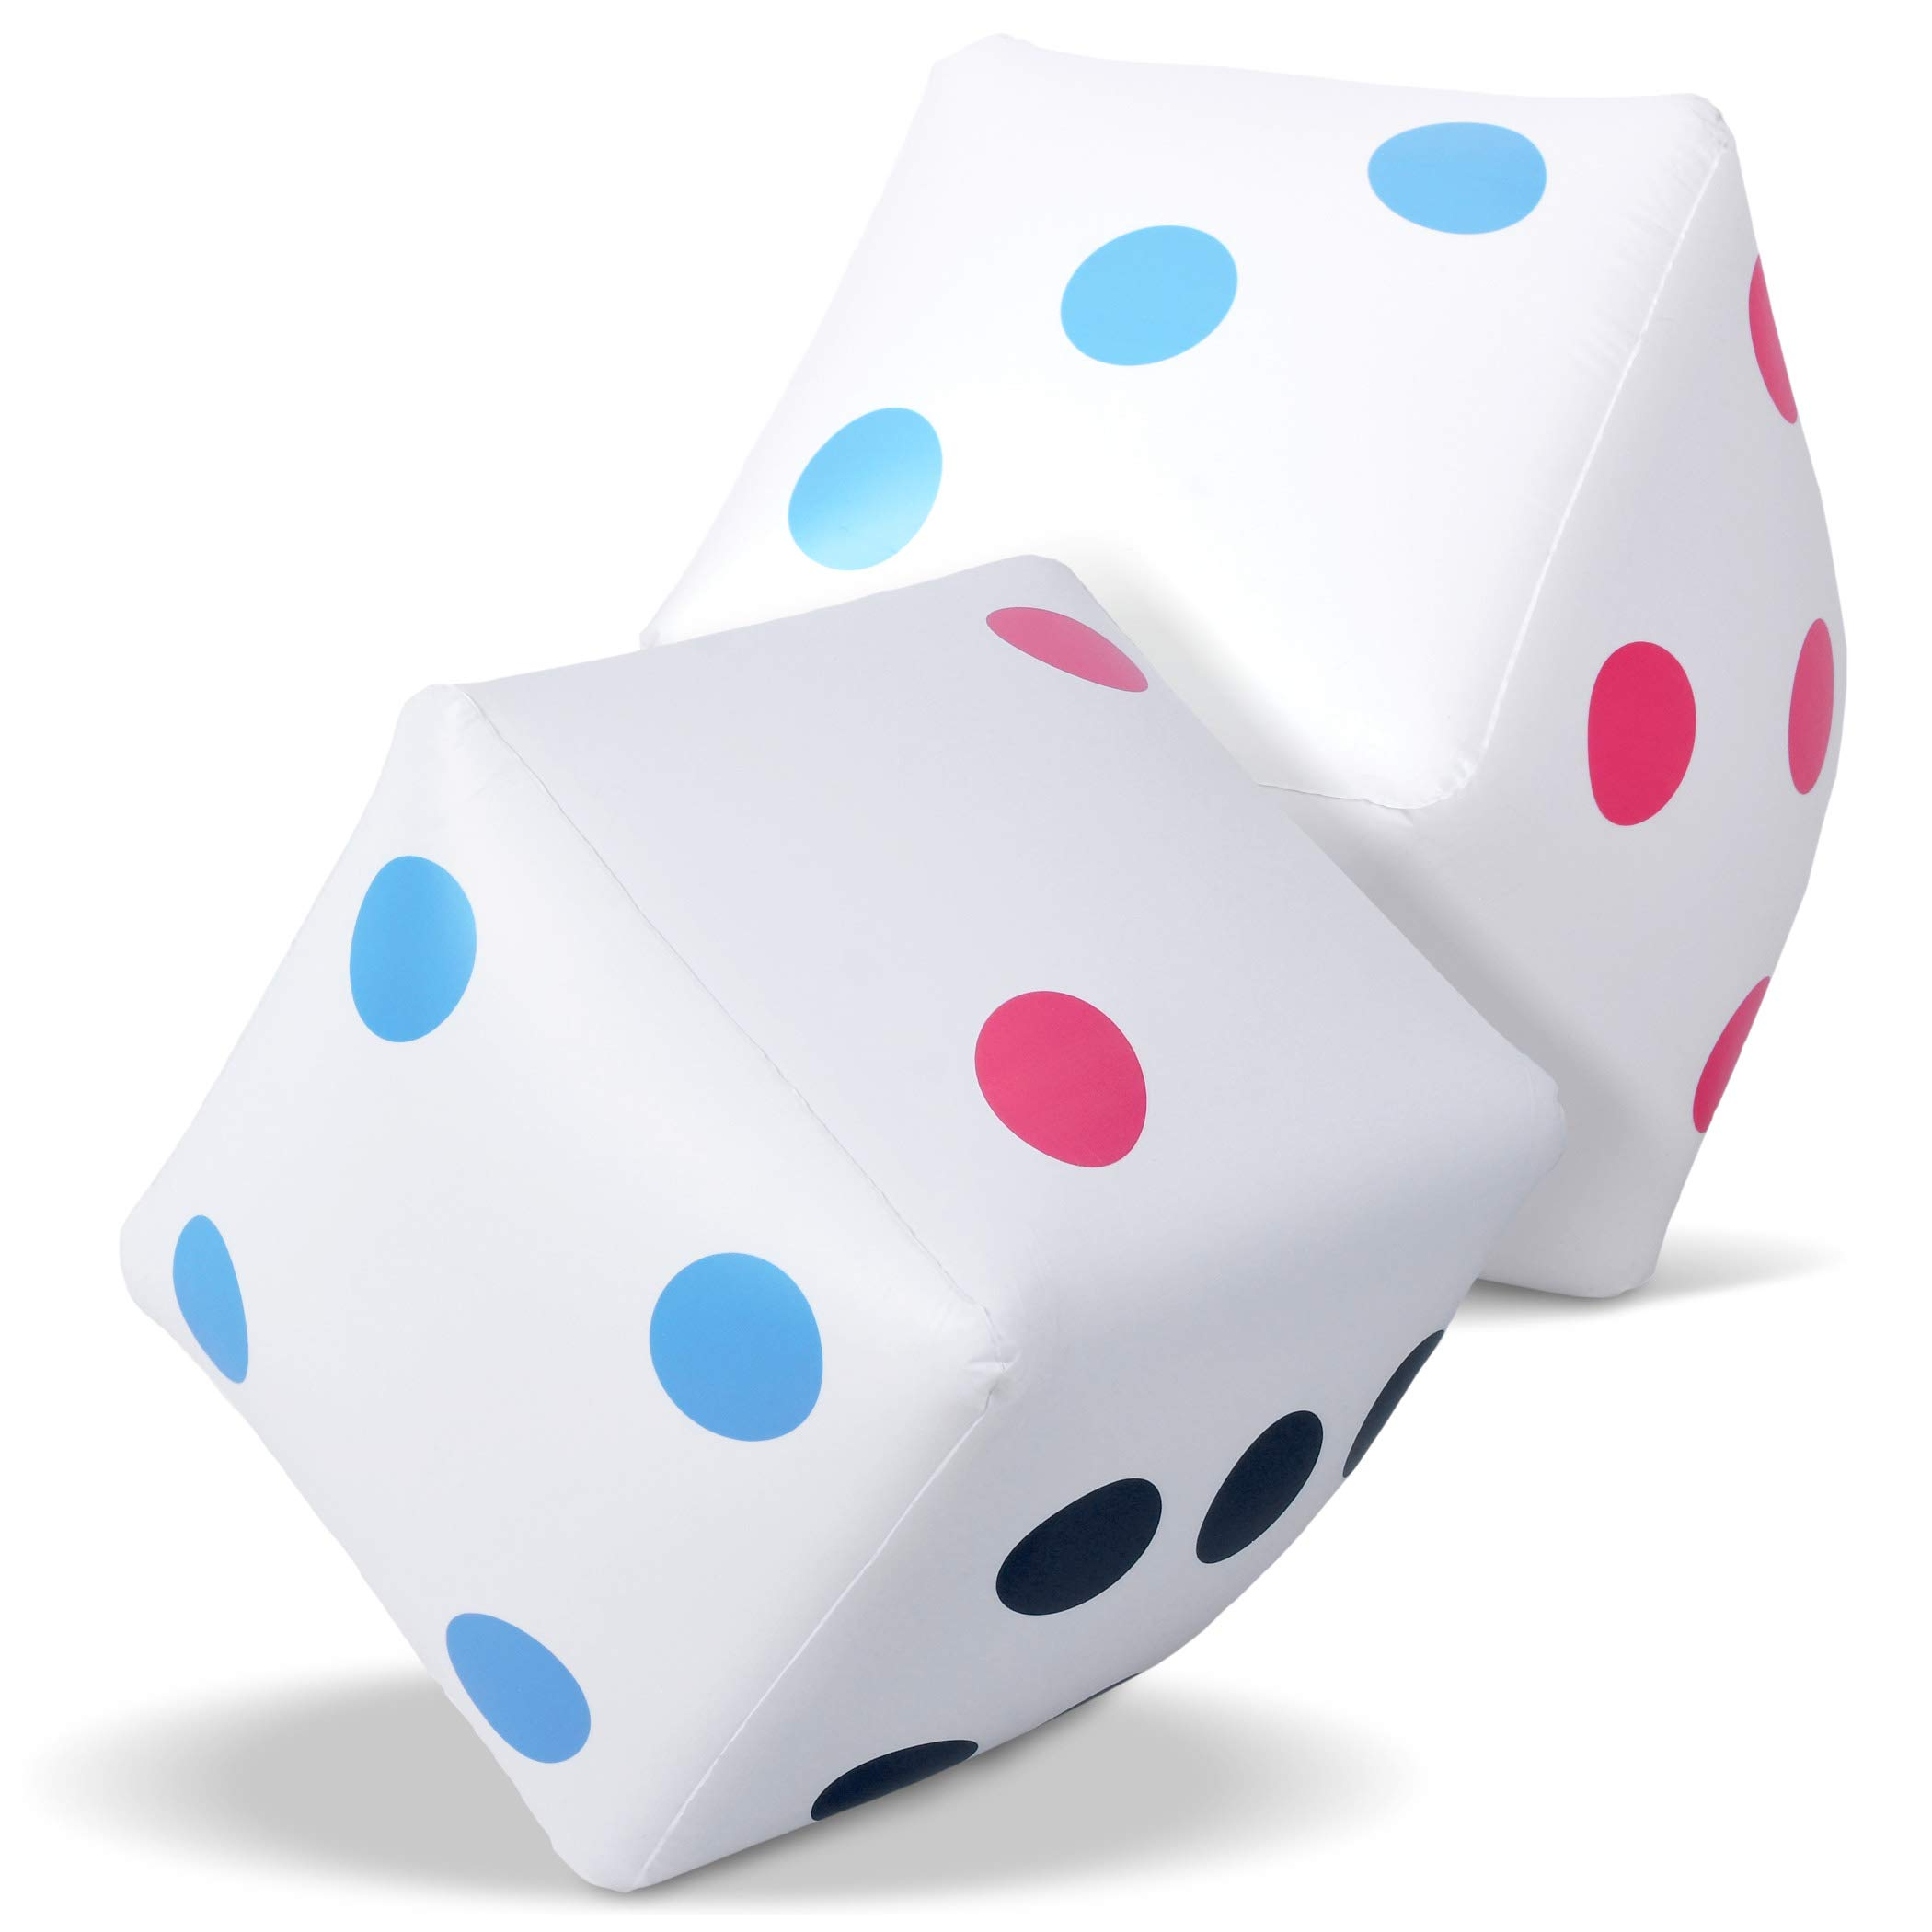 GoSports Giant 2' Inflatable Dice for Dice Games | Jumbo Size with Rapid Valve Inflation, 2 Pack by GoSports